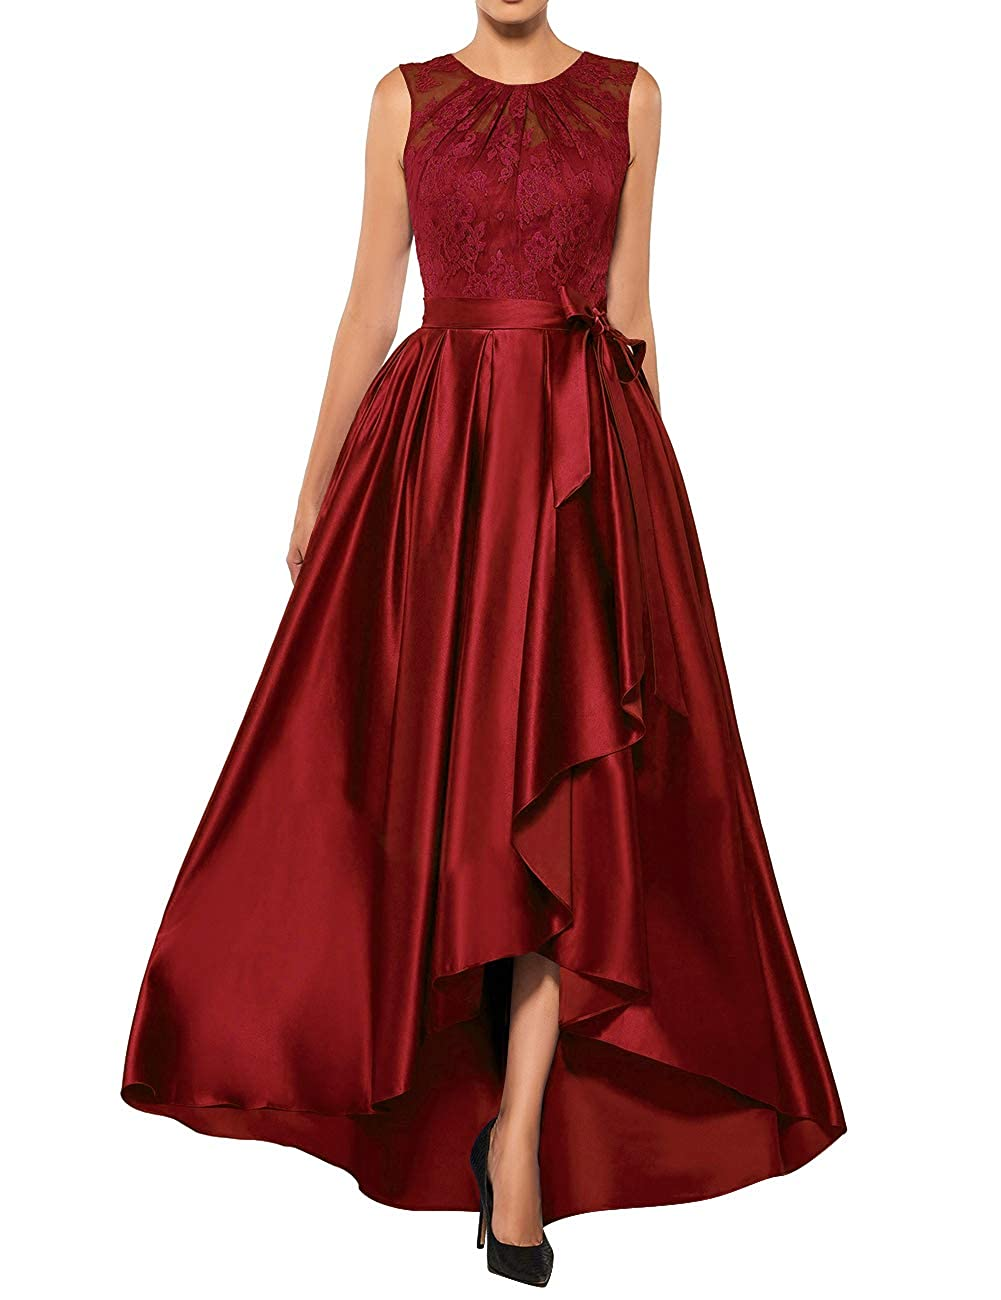 Burgundy Mother The Bride Dresses Lace High Low Formal Evening Party Gown A Line Prom